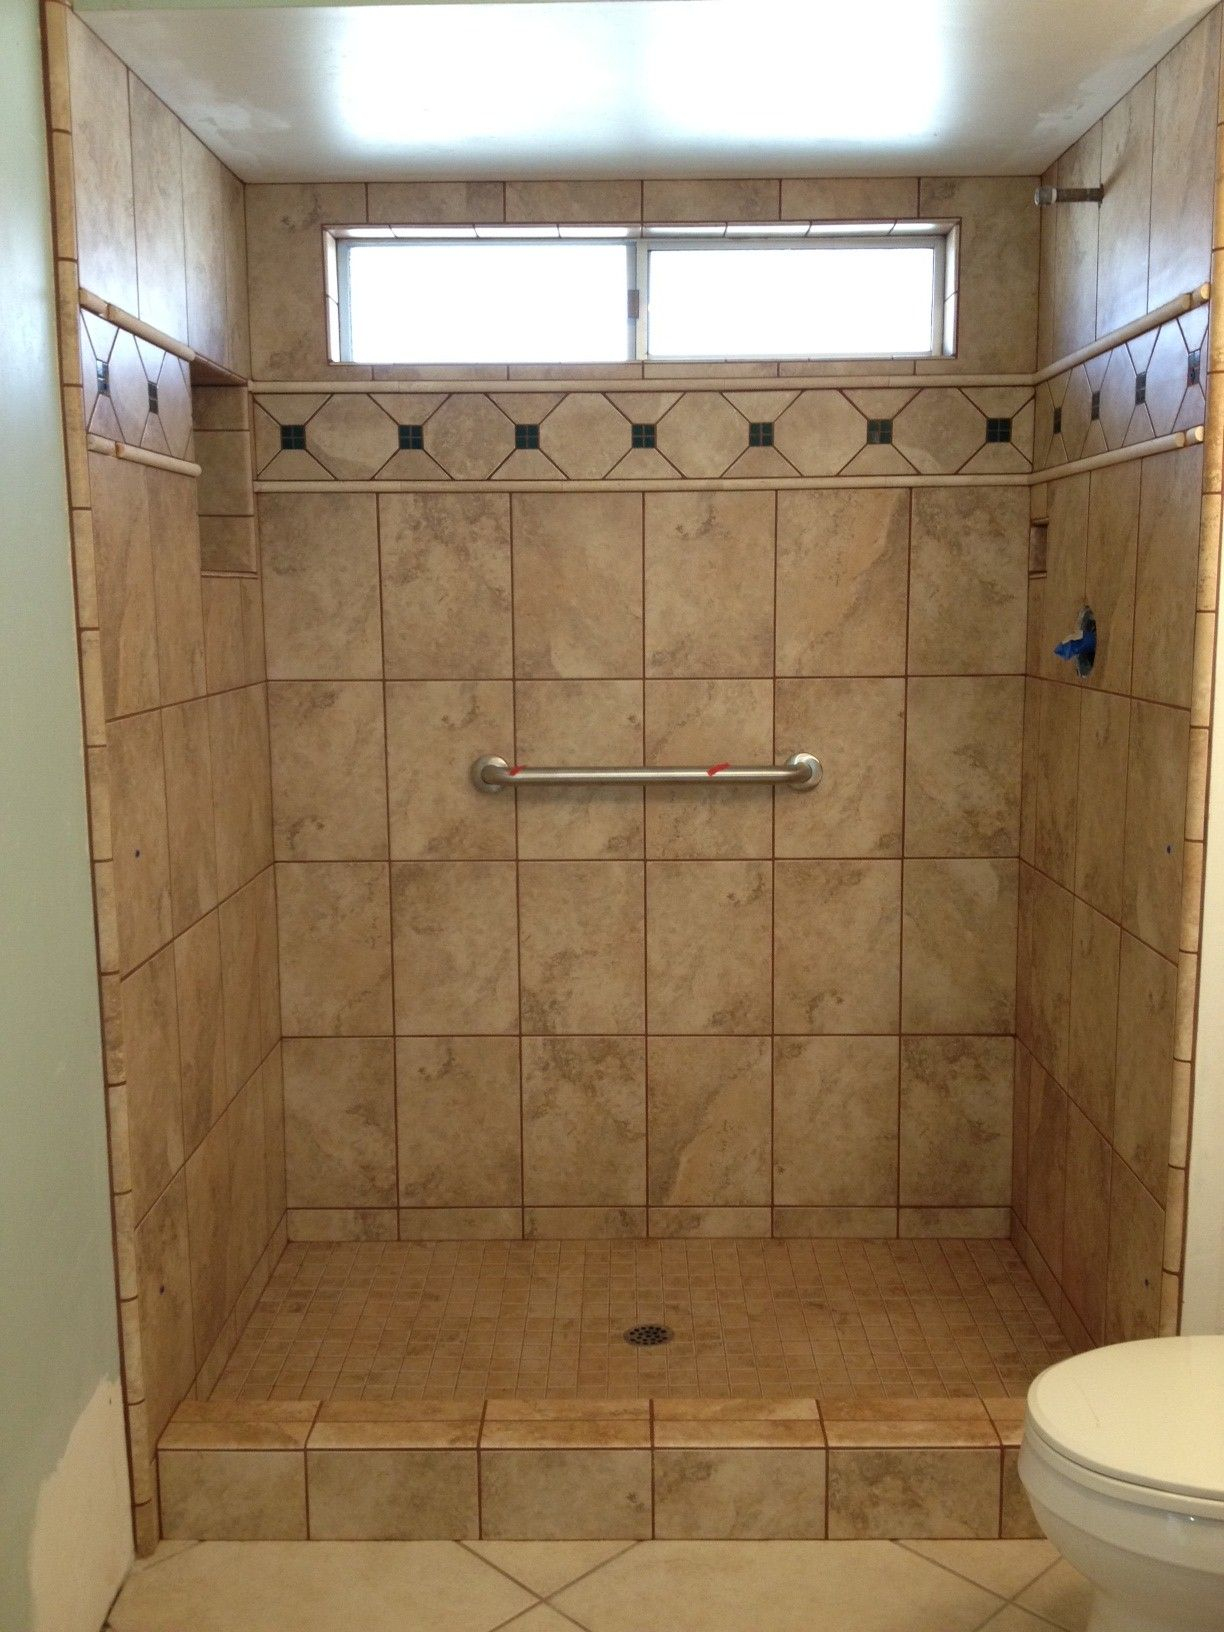 Photos of tiled shower stalls photos gallery custom for Tiled bathroom designs pictures